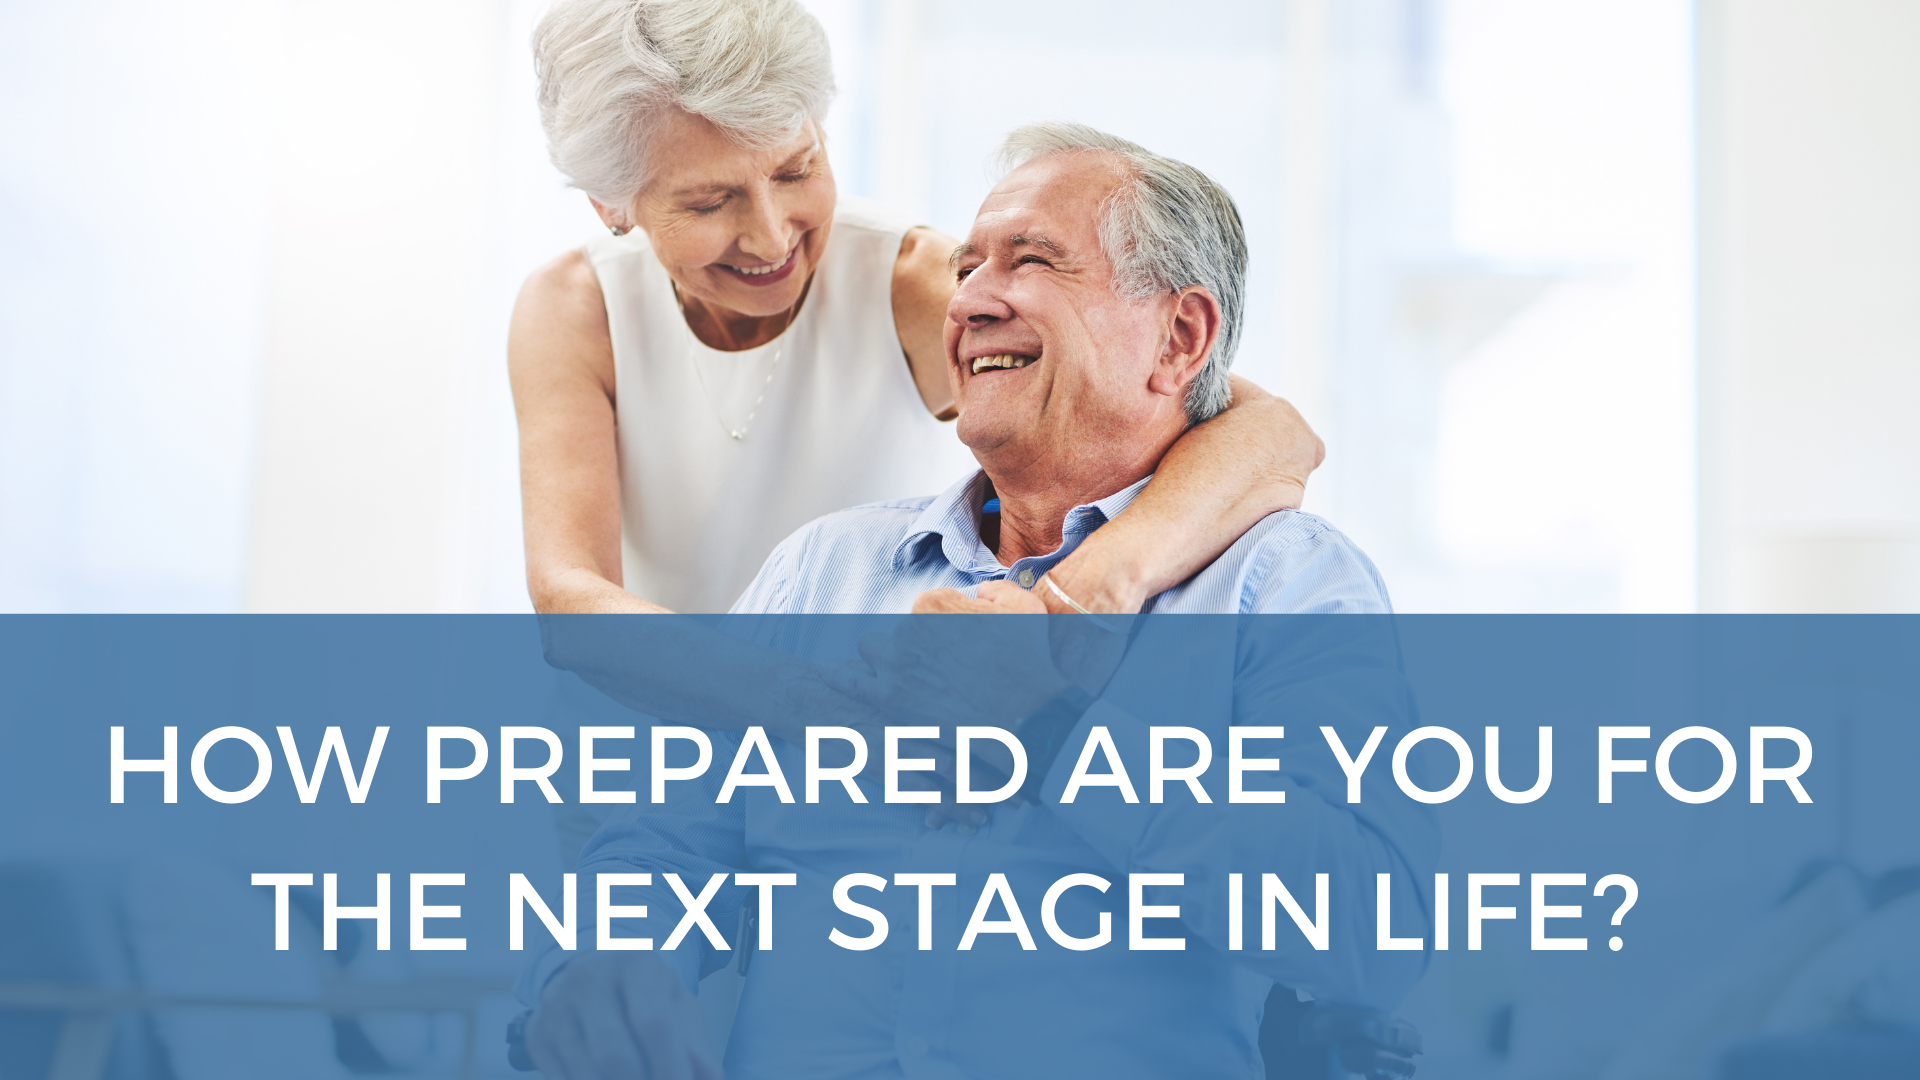 How prepared are you for the next stage in life?